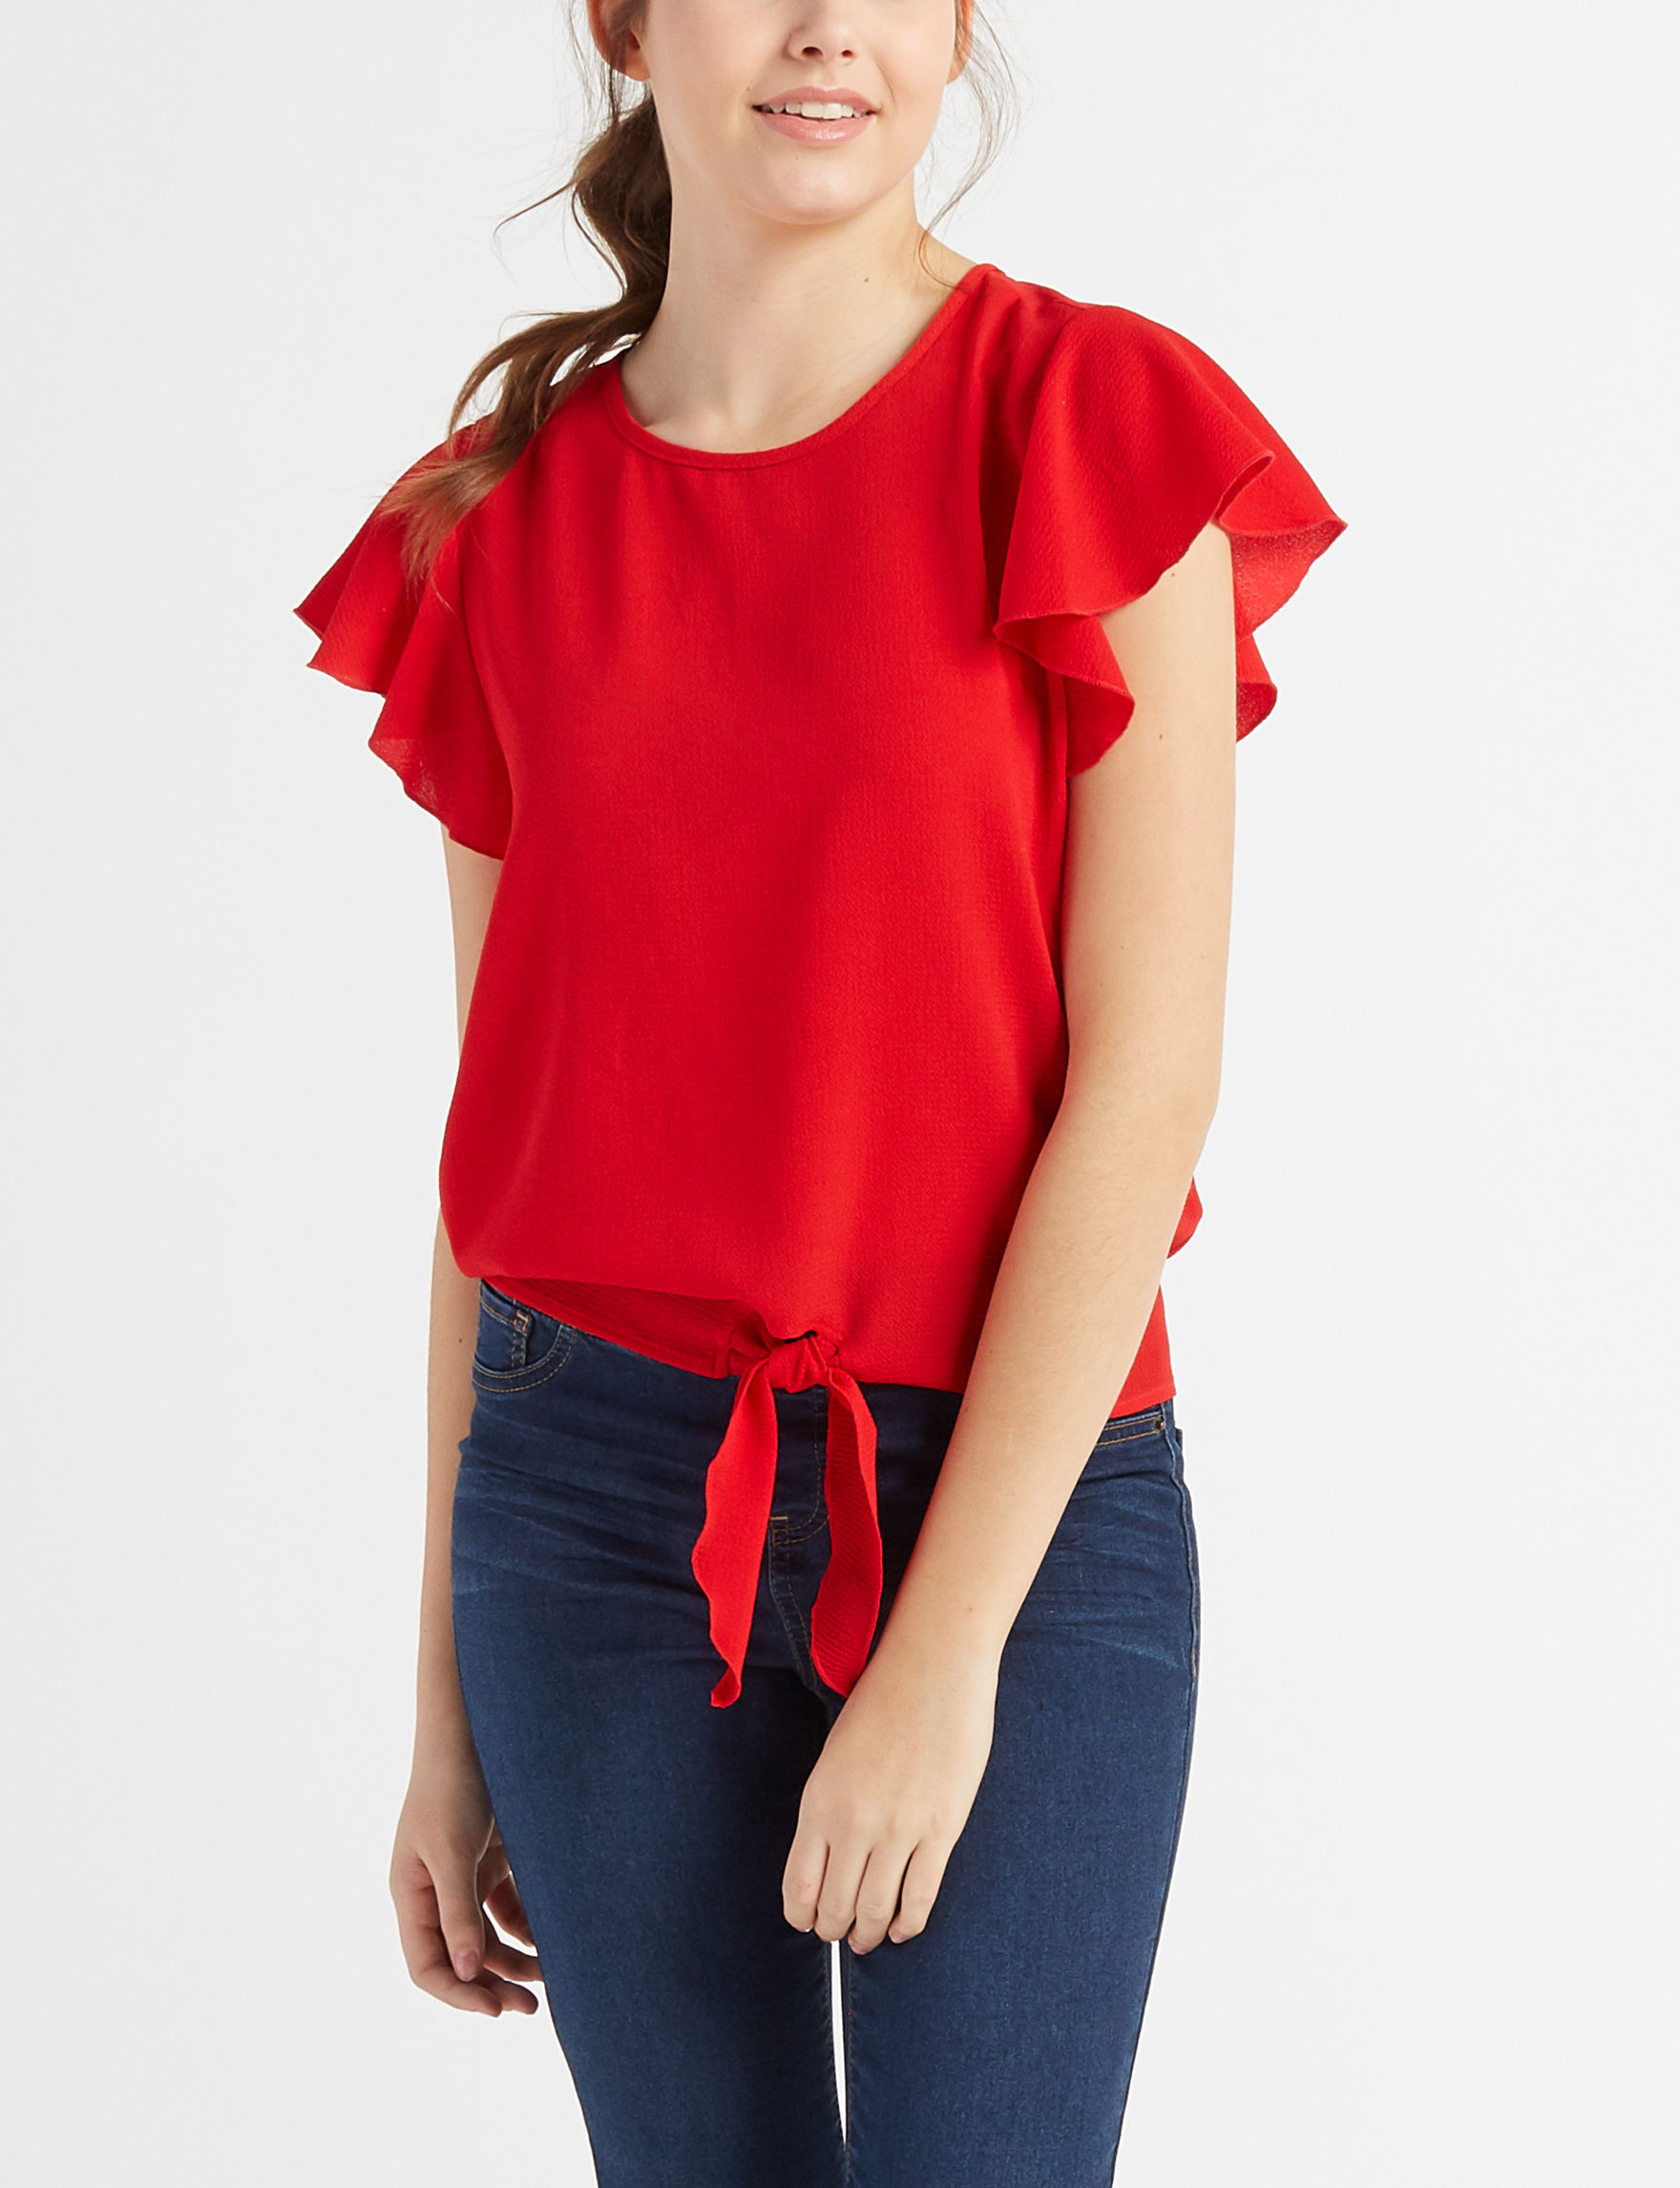 Justify Red Shirts & Blouses